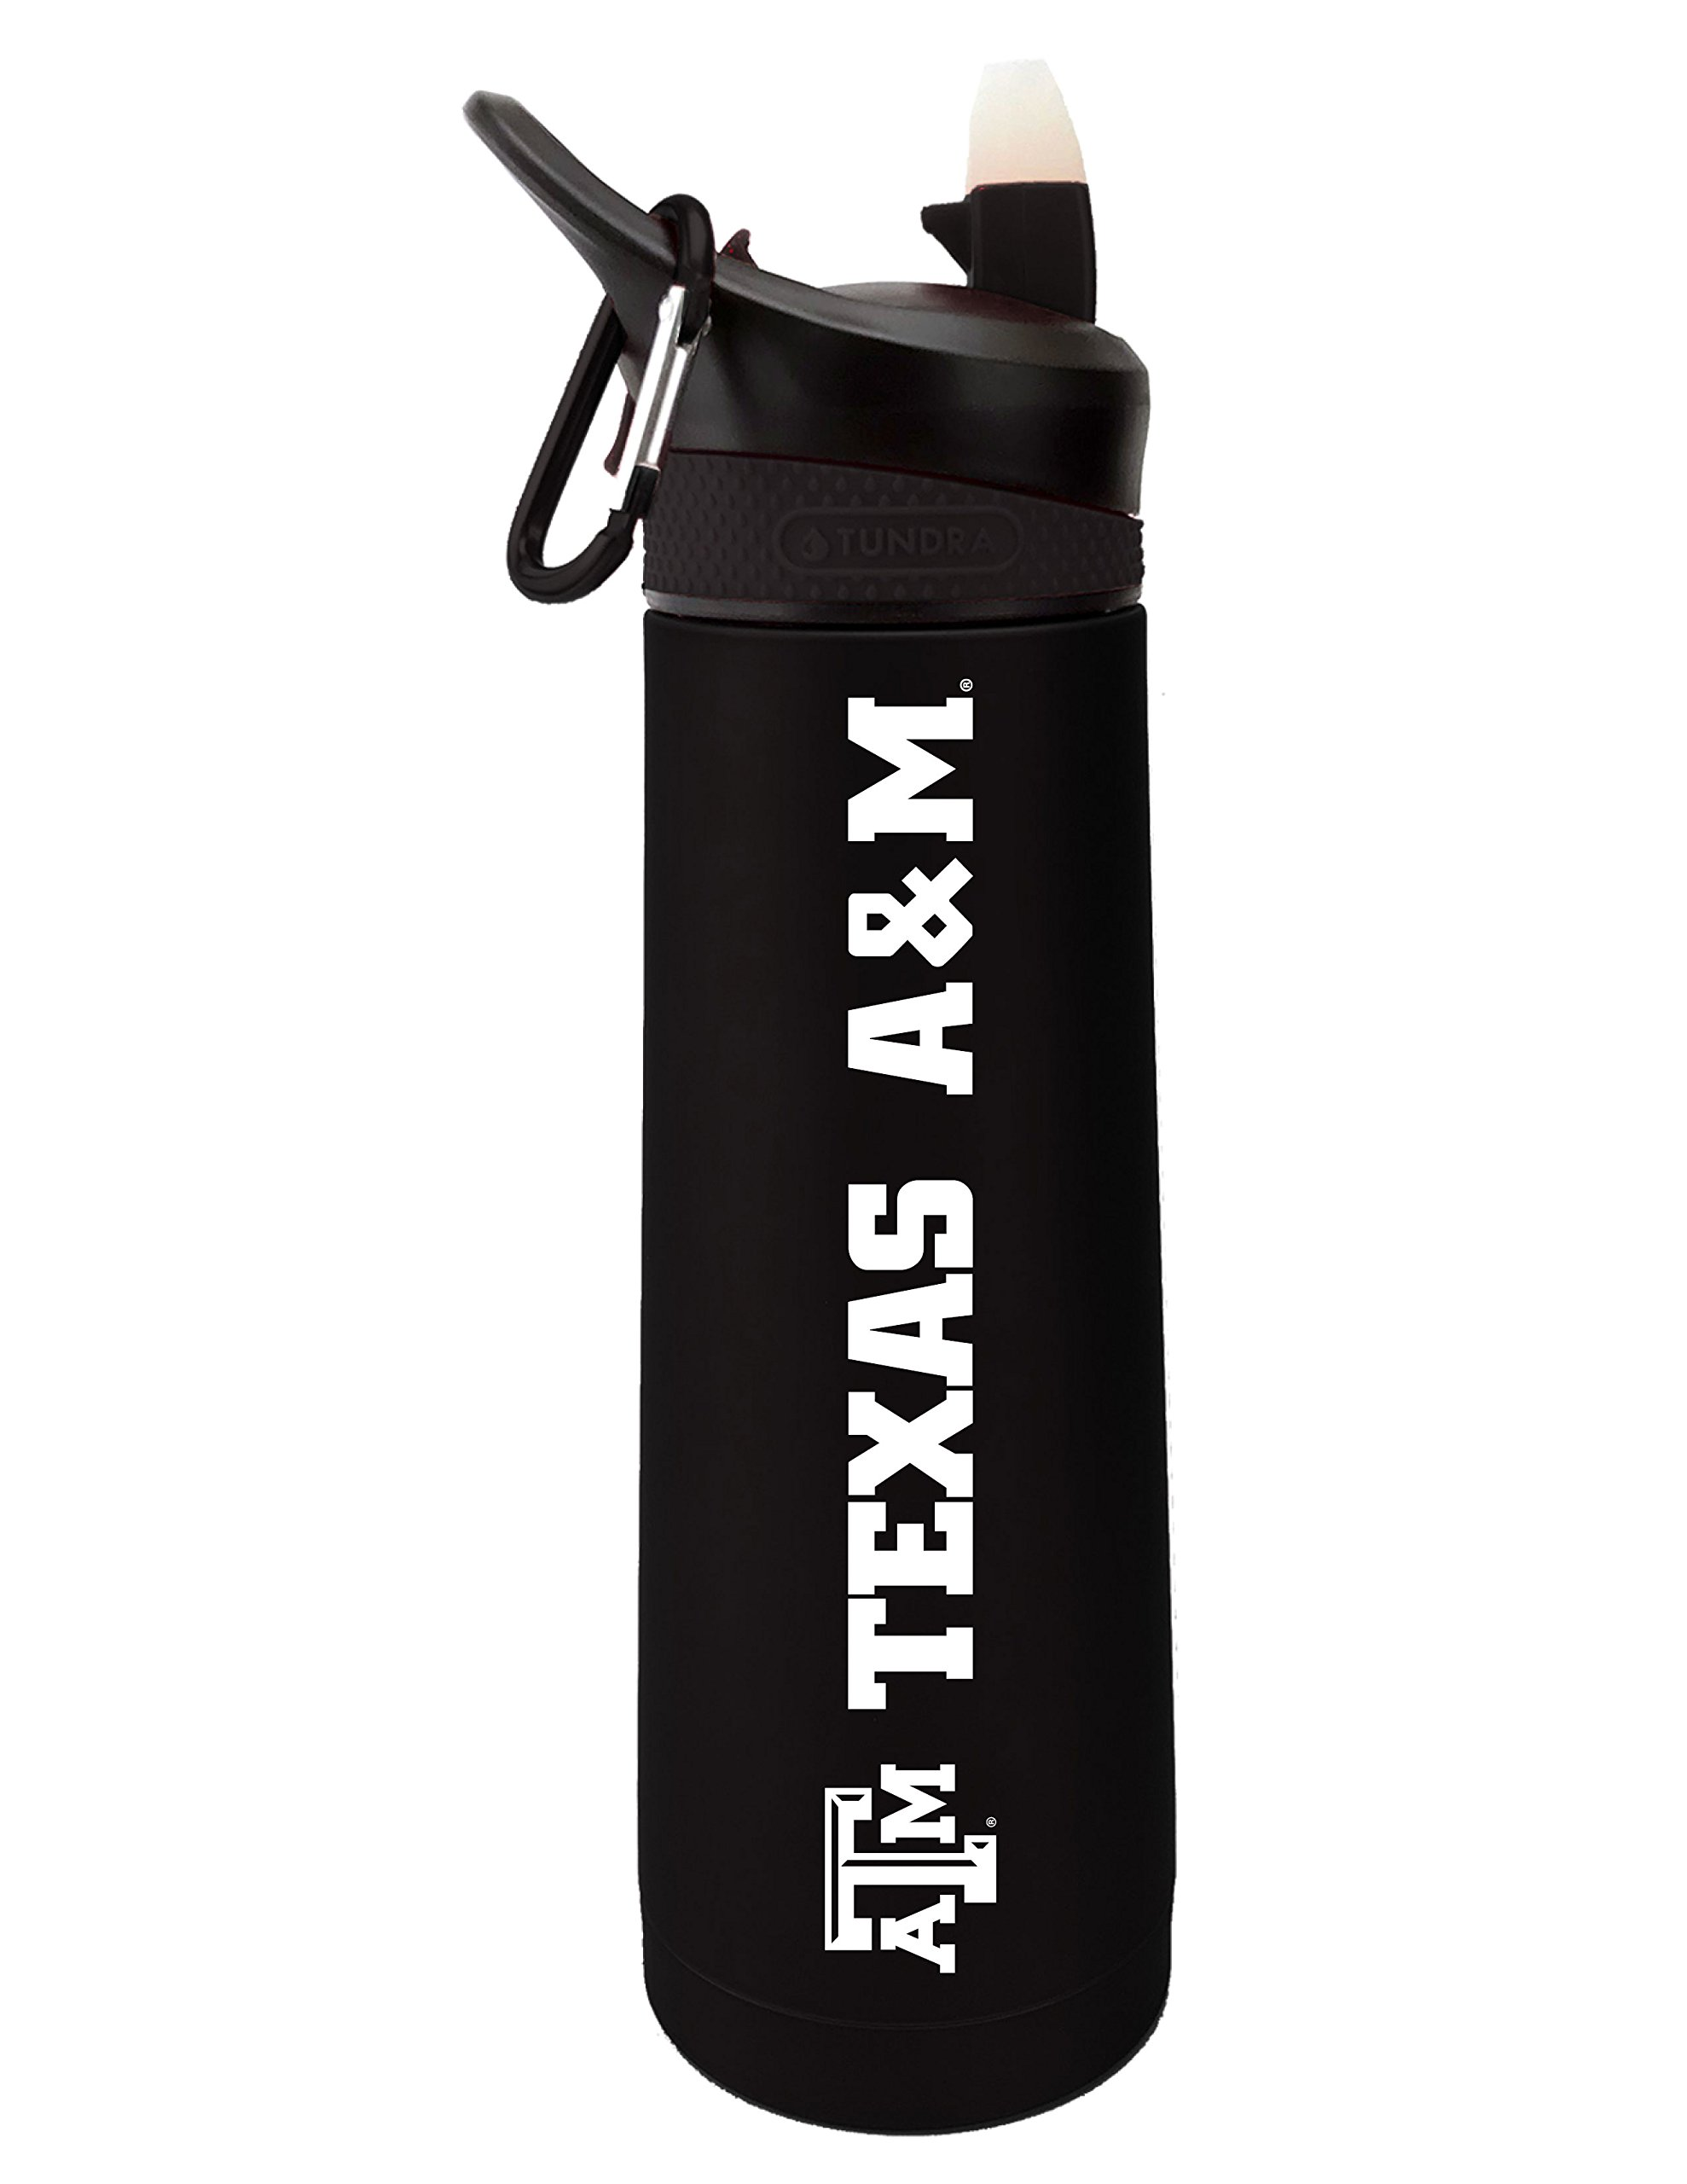 Fanatic Group Texas A&M University Dual Walled Stainless Steel Sports Bottle, Design 1 - Black